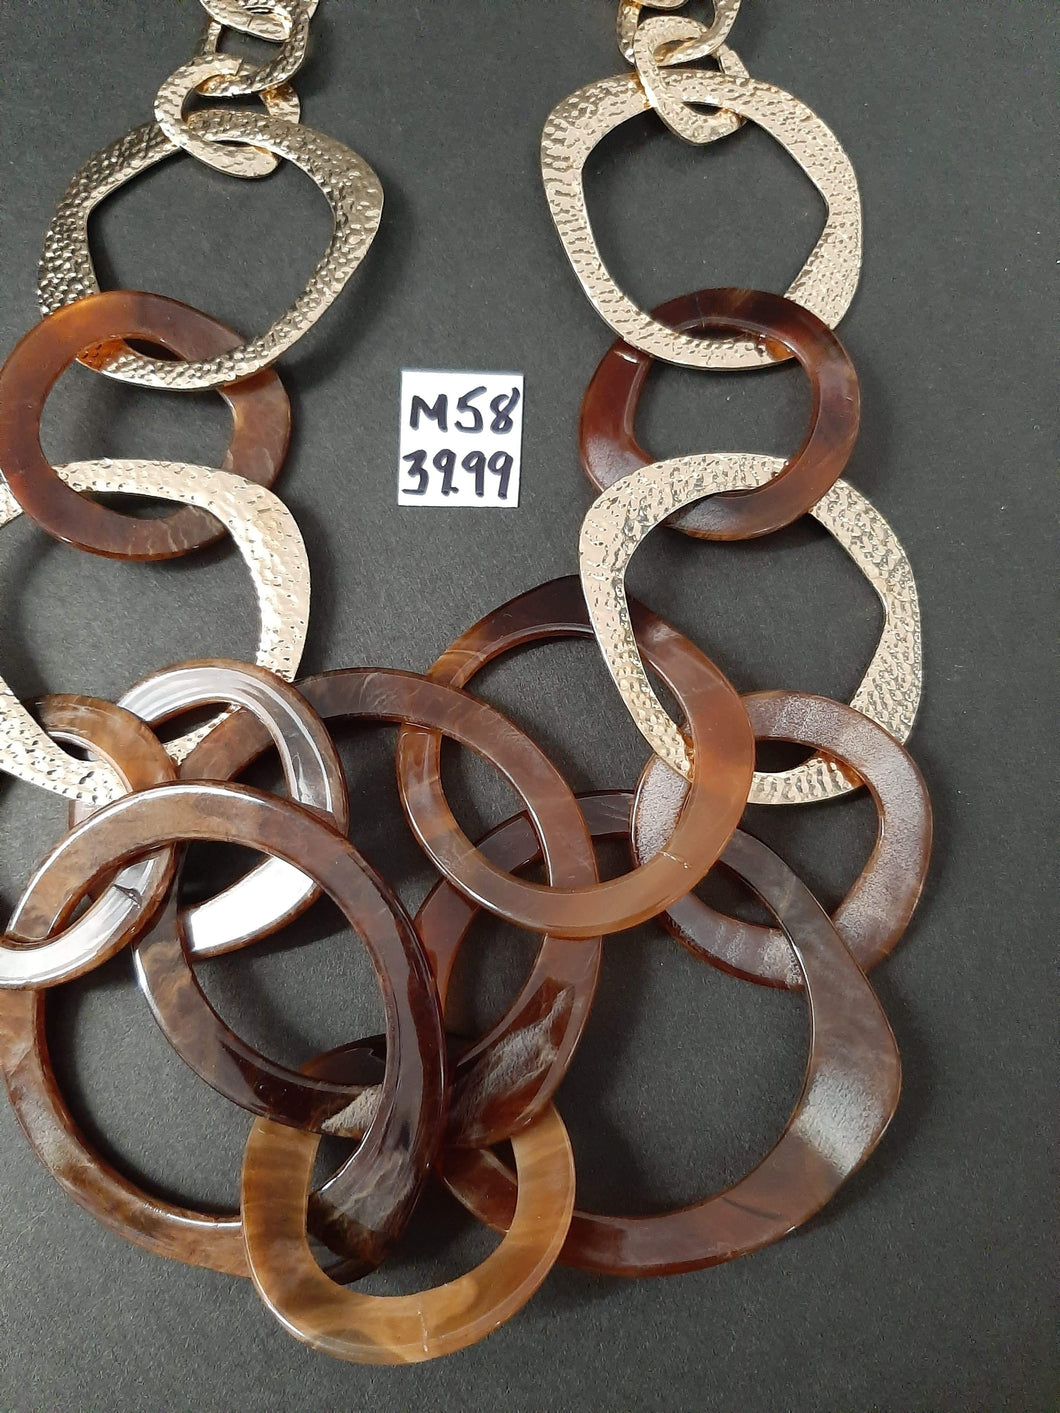 Necklace M58